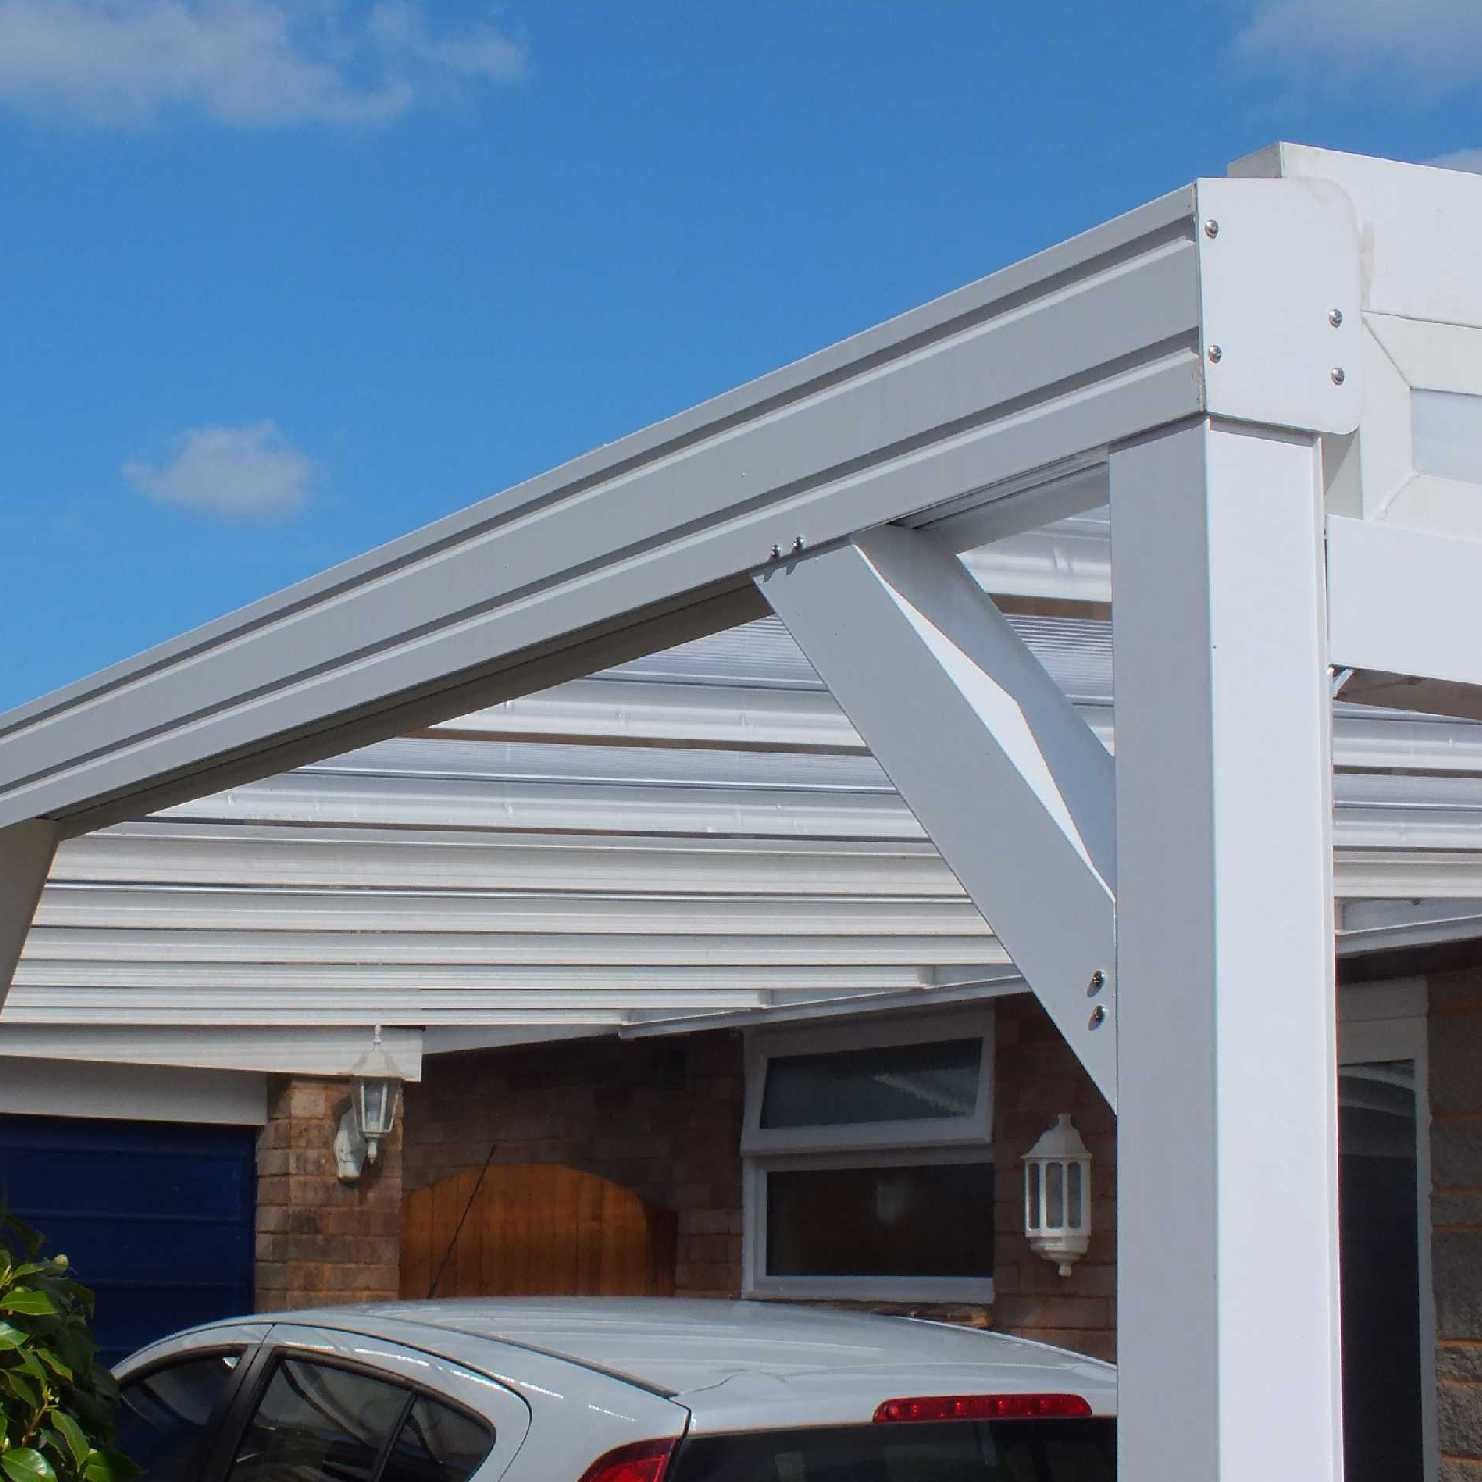 Buy Omega Smart White Lean-To Canopy with 16mm Polycarbonate Glazing - 5.2m (W) x 2.5m (P), (3) Supporting Posts online today